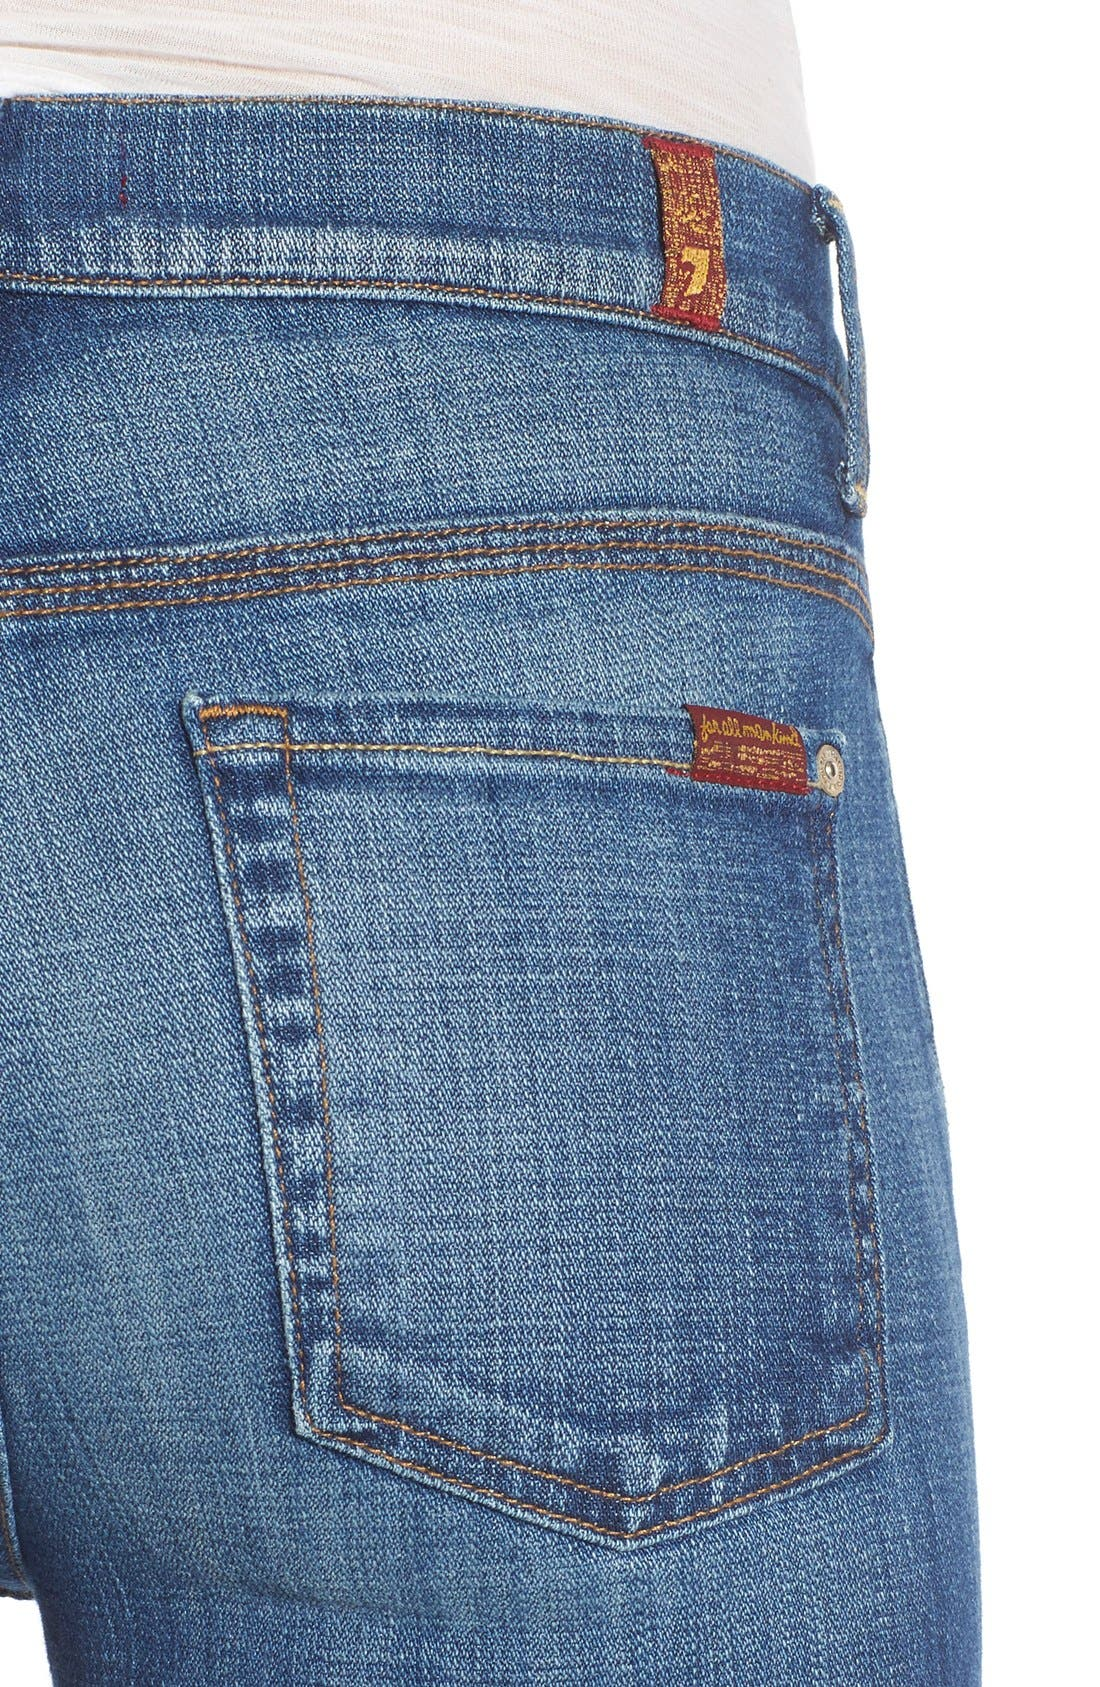 Alternate Image 4  - 7 For All Mankind® 'Ginger' High Rise Raw Hem Flare Jeans (Athens Broken Twill)